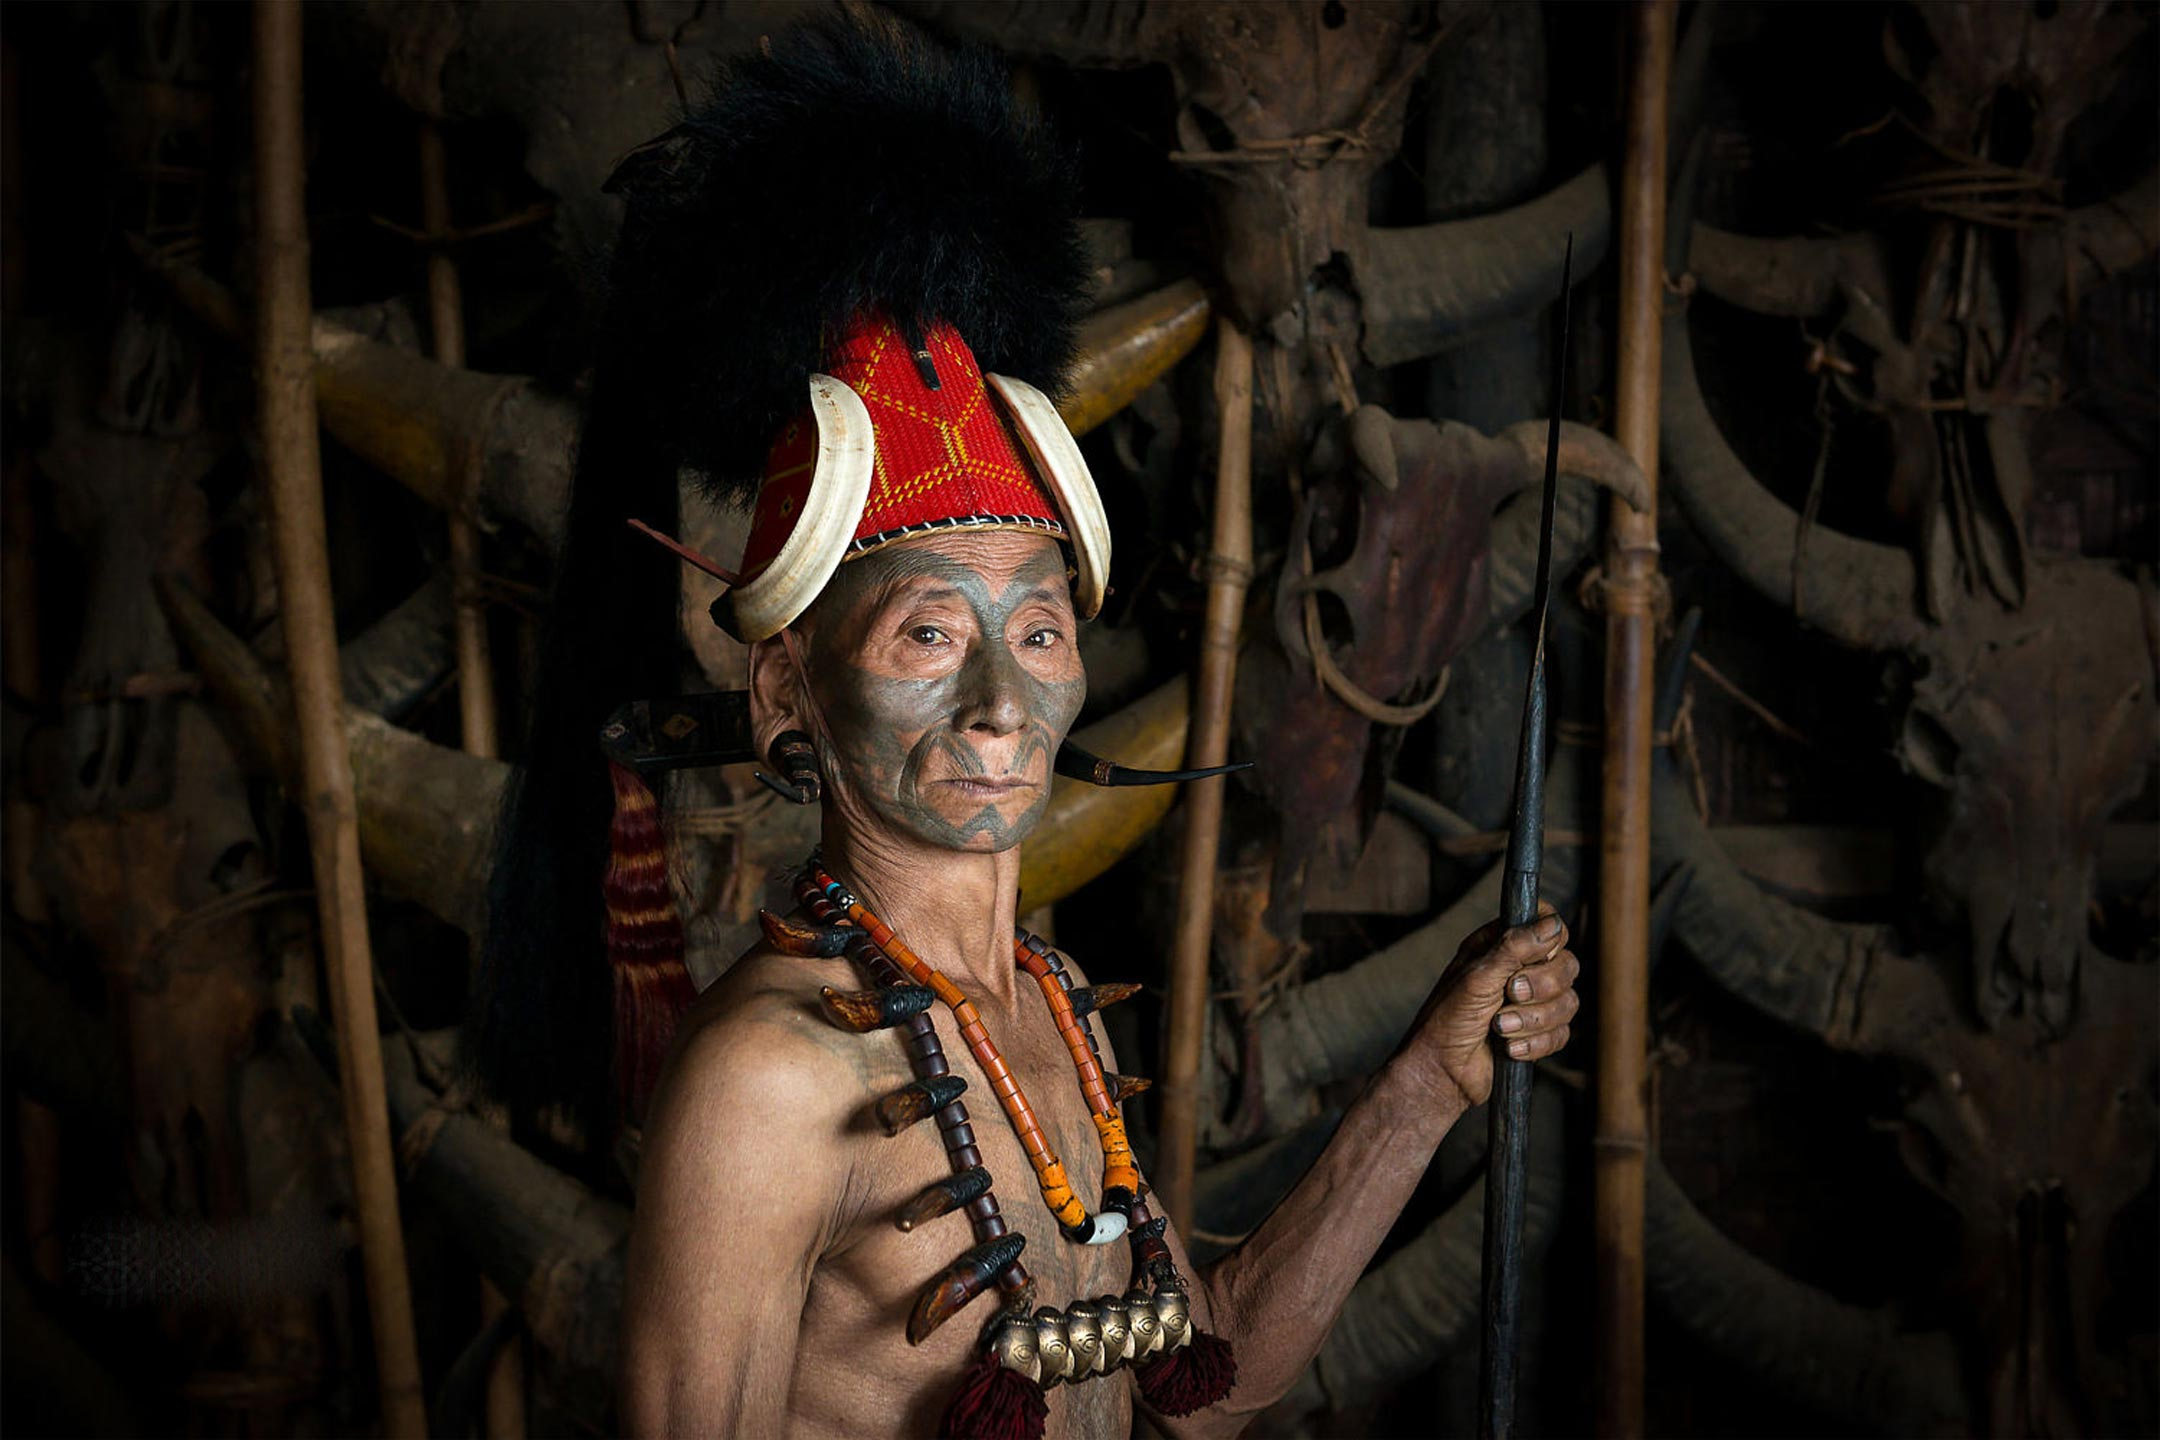 A Konyak Warrior by Manlam konyak / WIKIMEDIA COMMONS